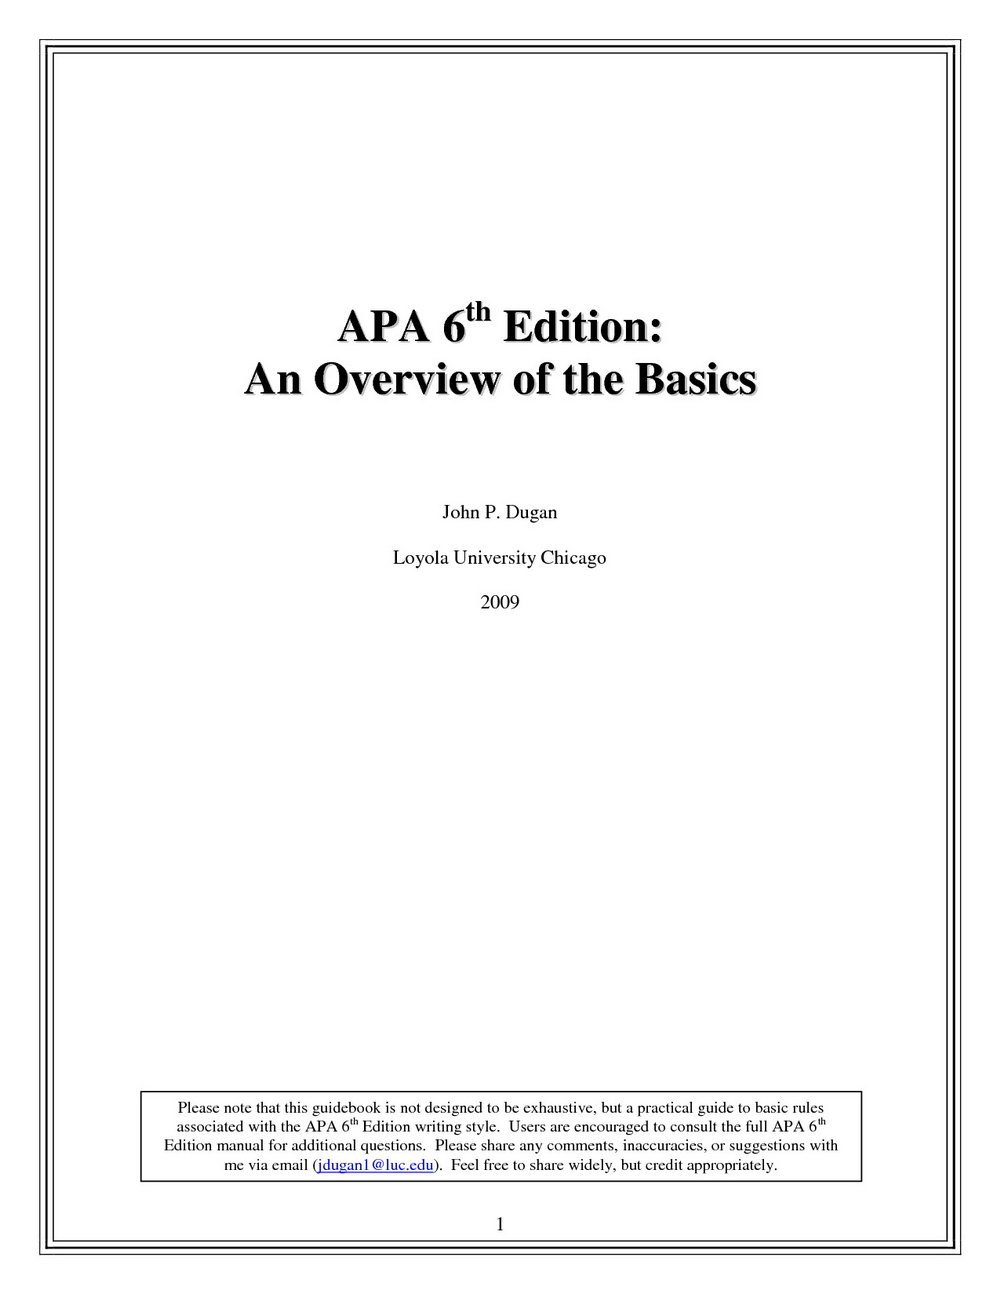 Apa 6th Edition Cover Page Template